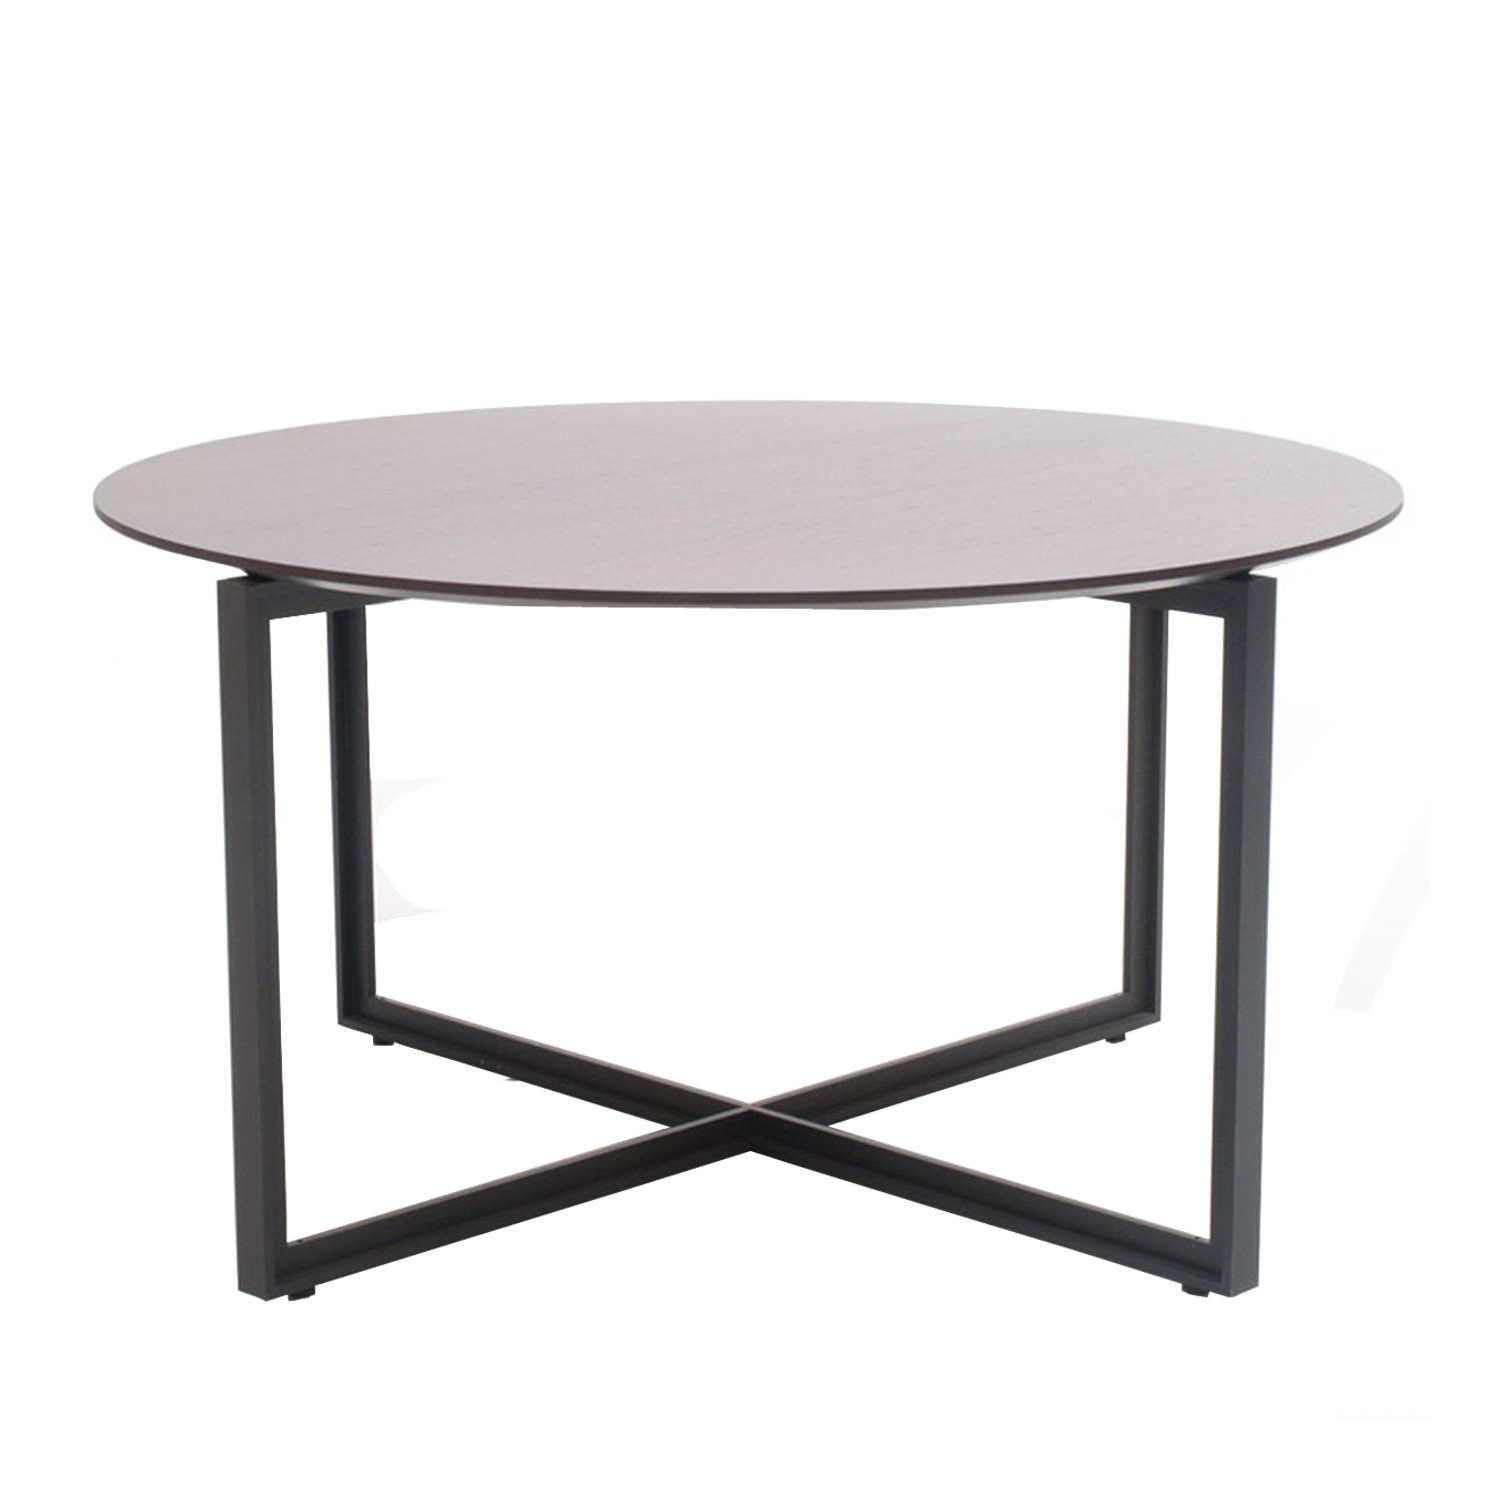 DESK Round Meeting Table